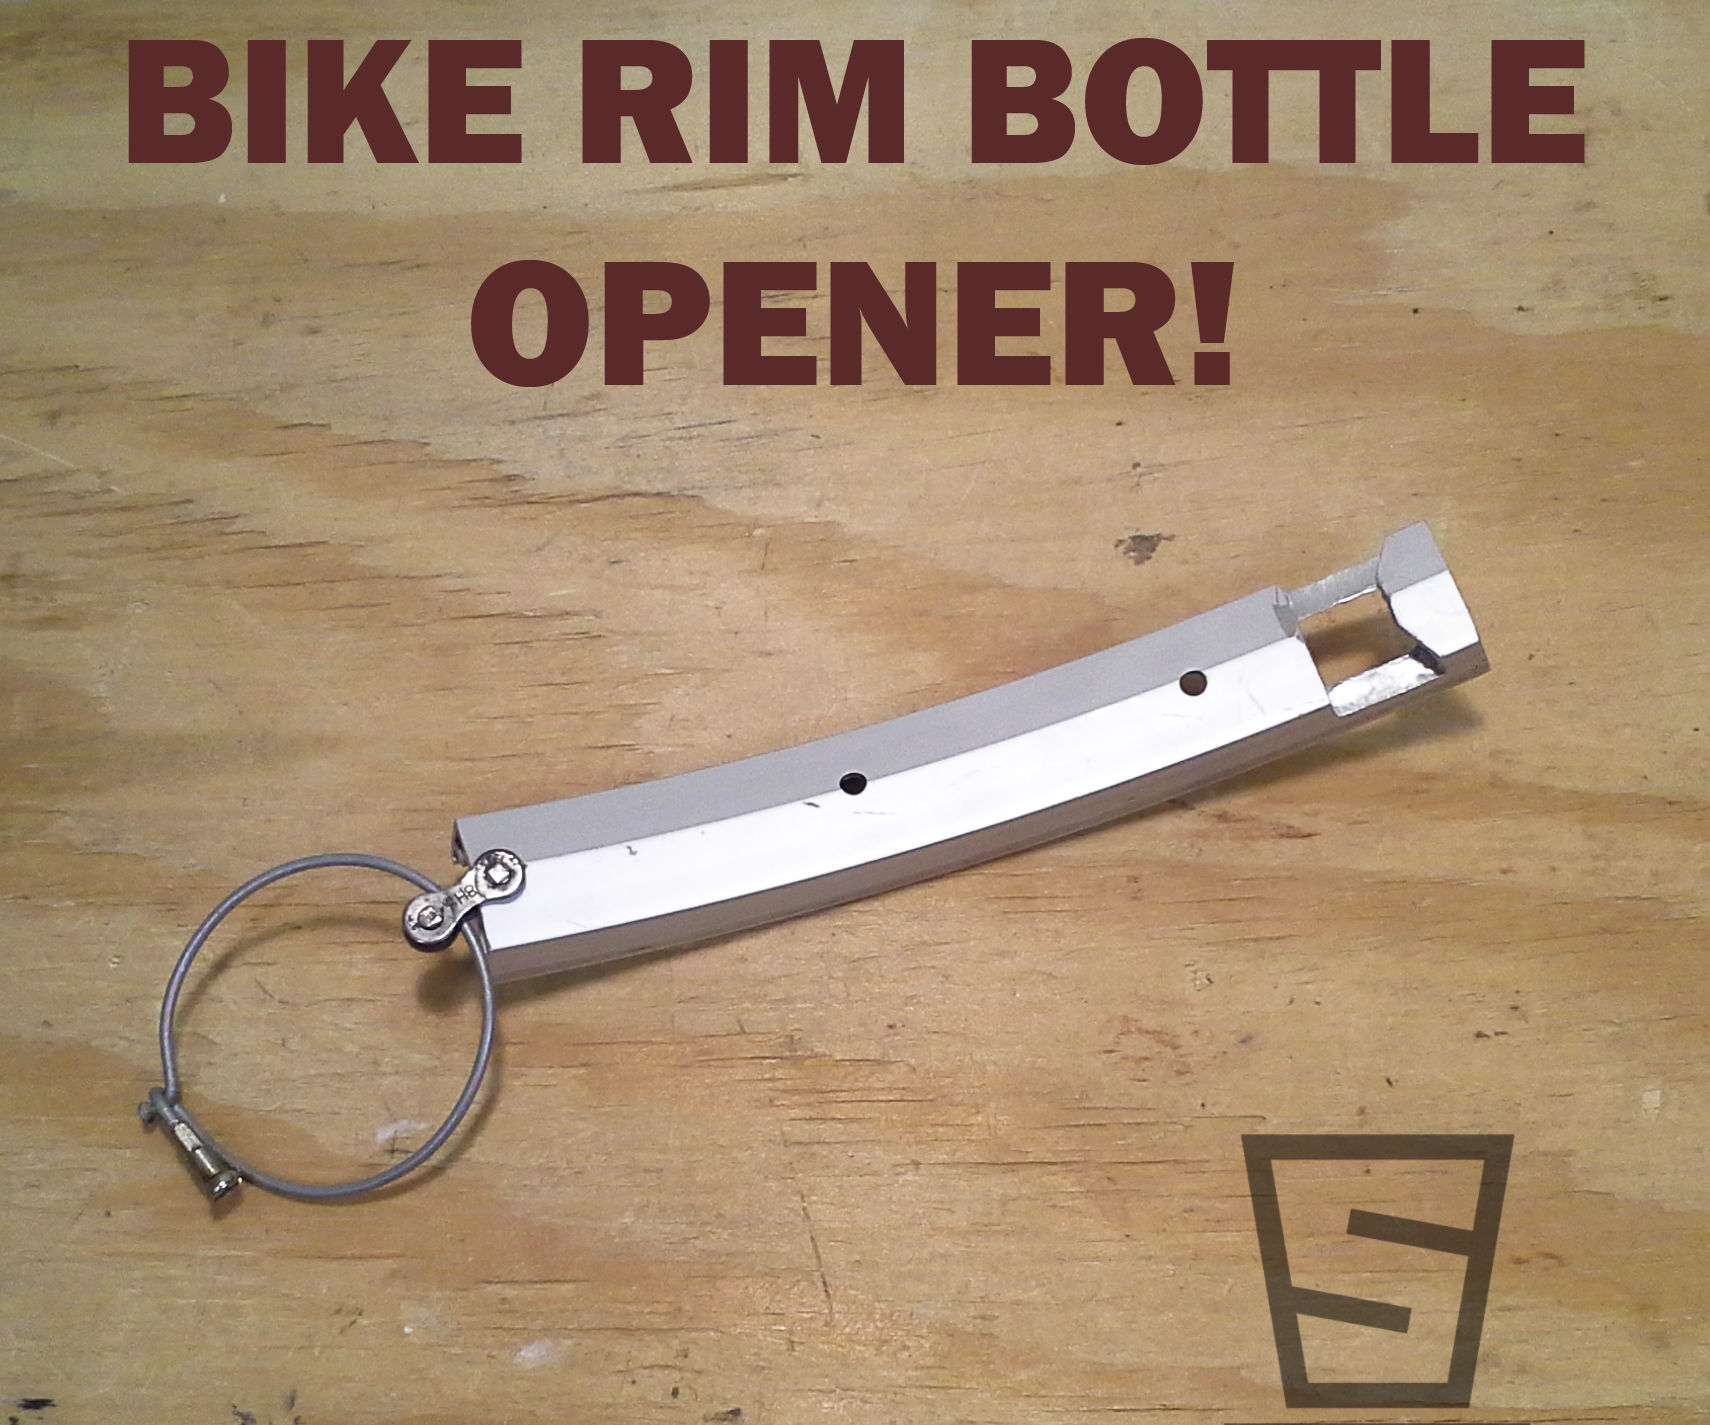 How to Make a Bike Rim Bottle Opener